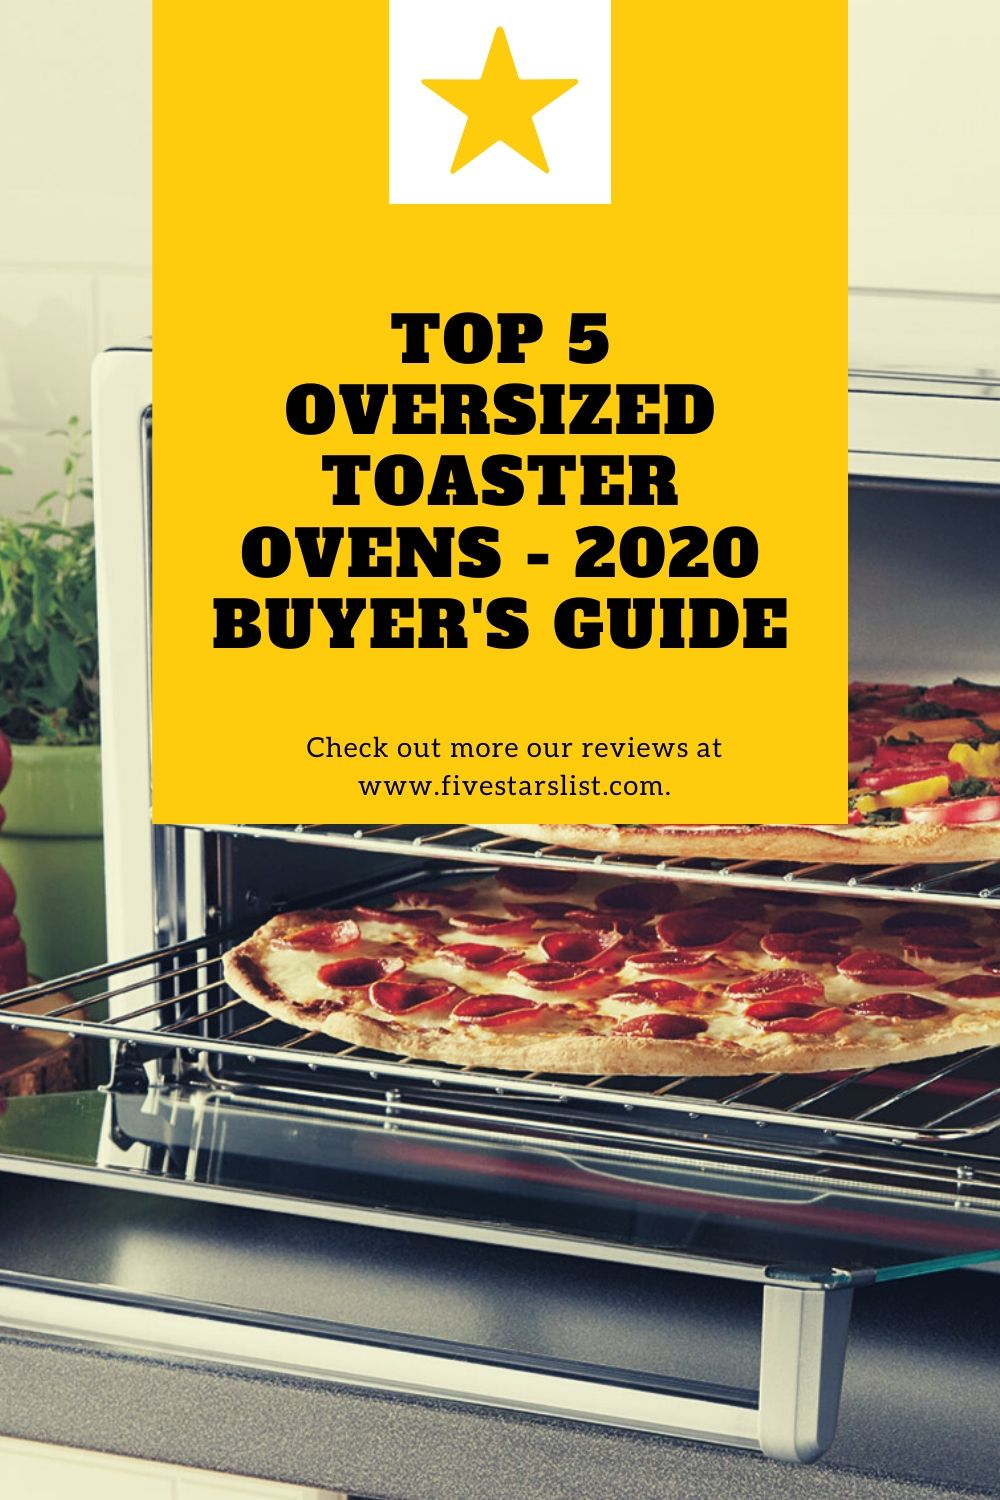 Top 5 Oversized Toaster Ovens - 2020 Buyer's Guide